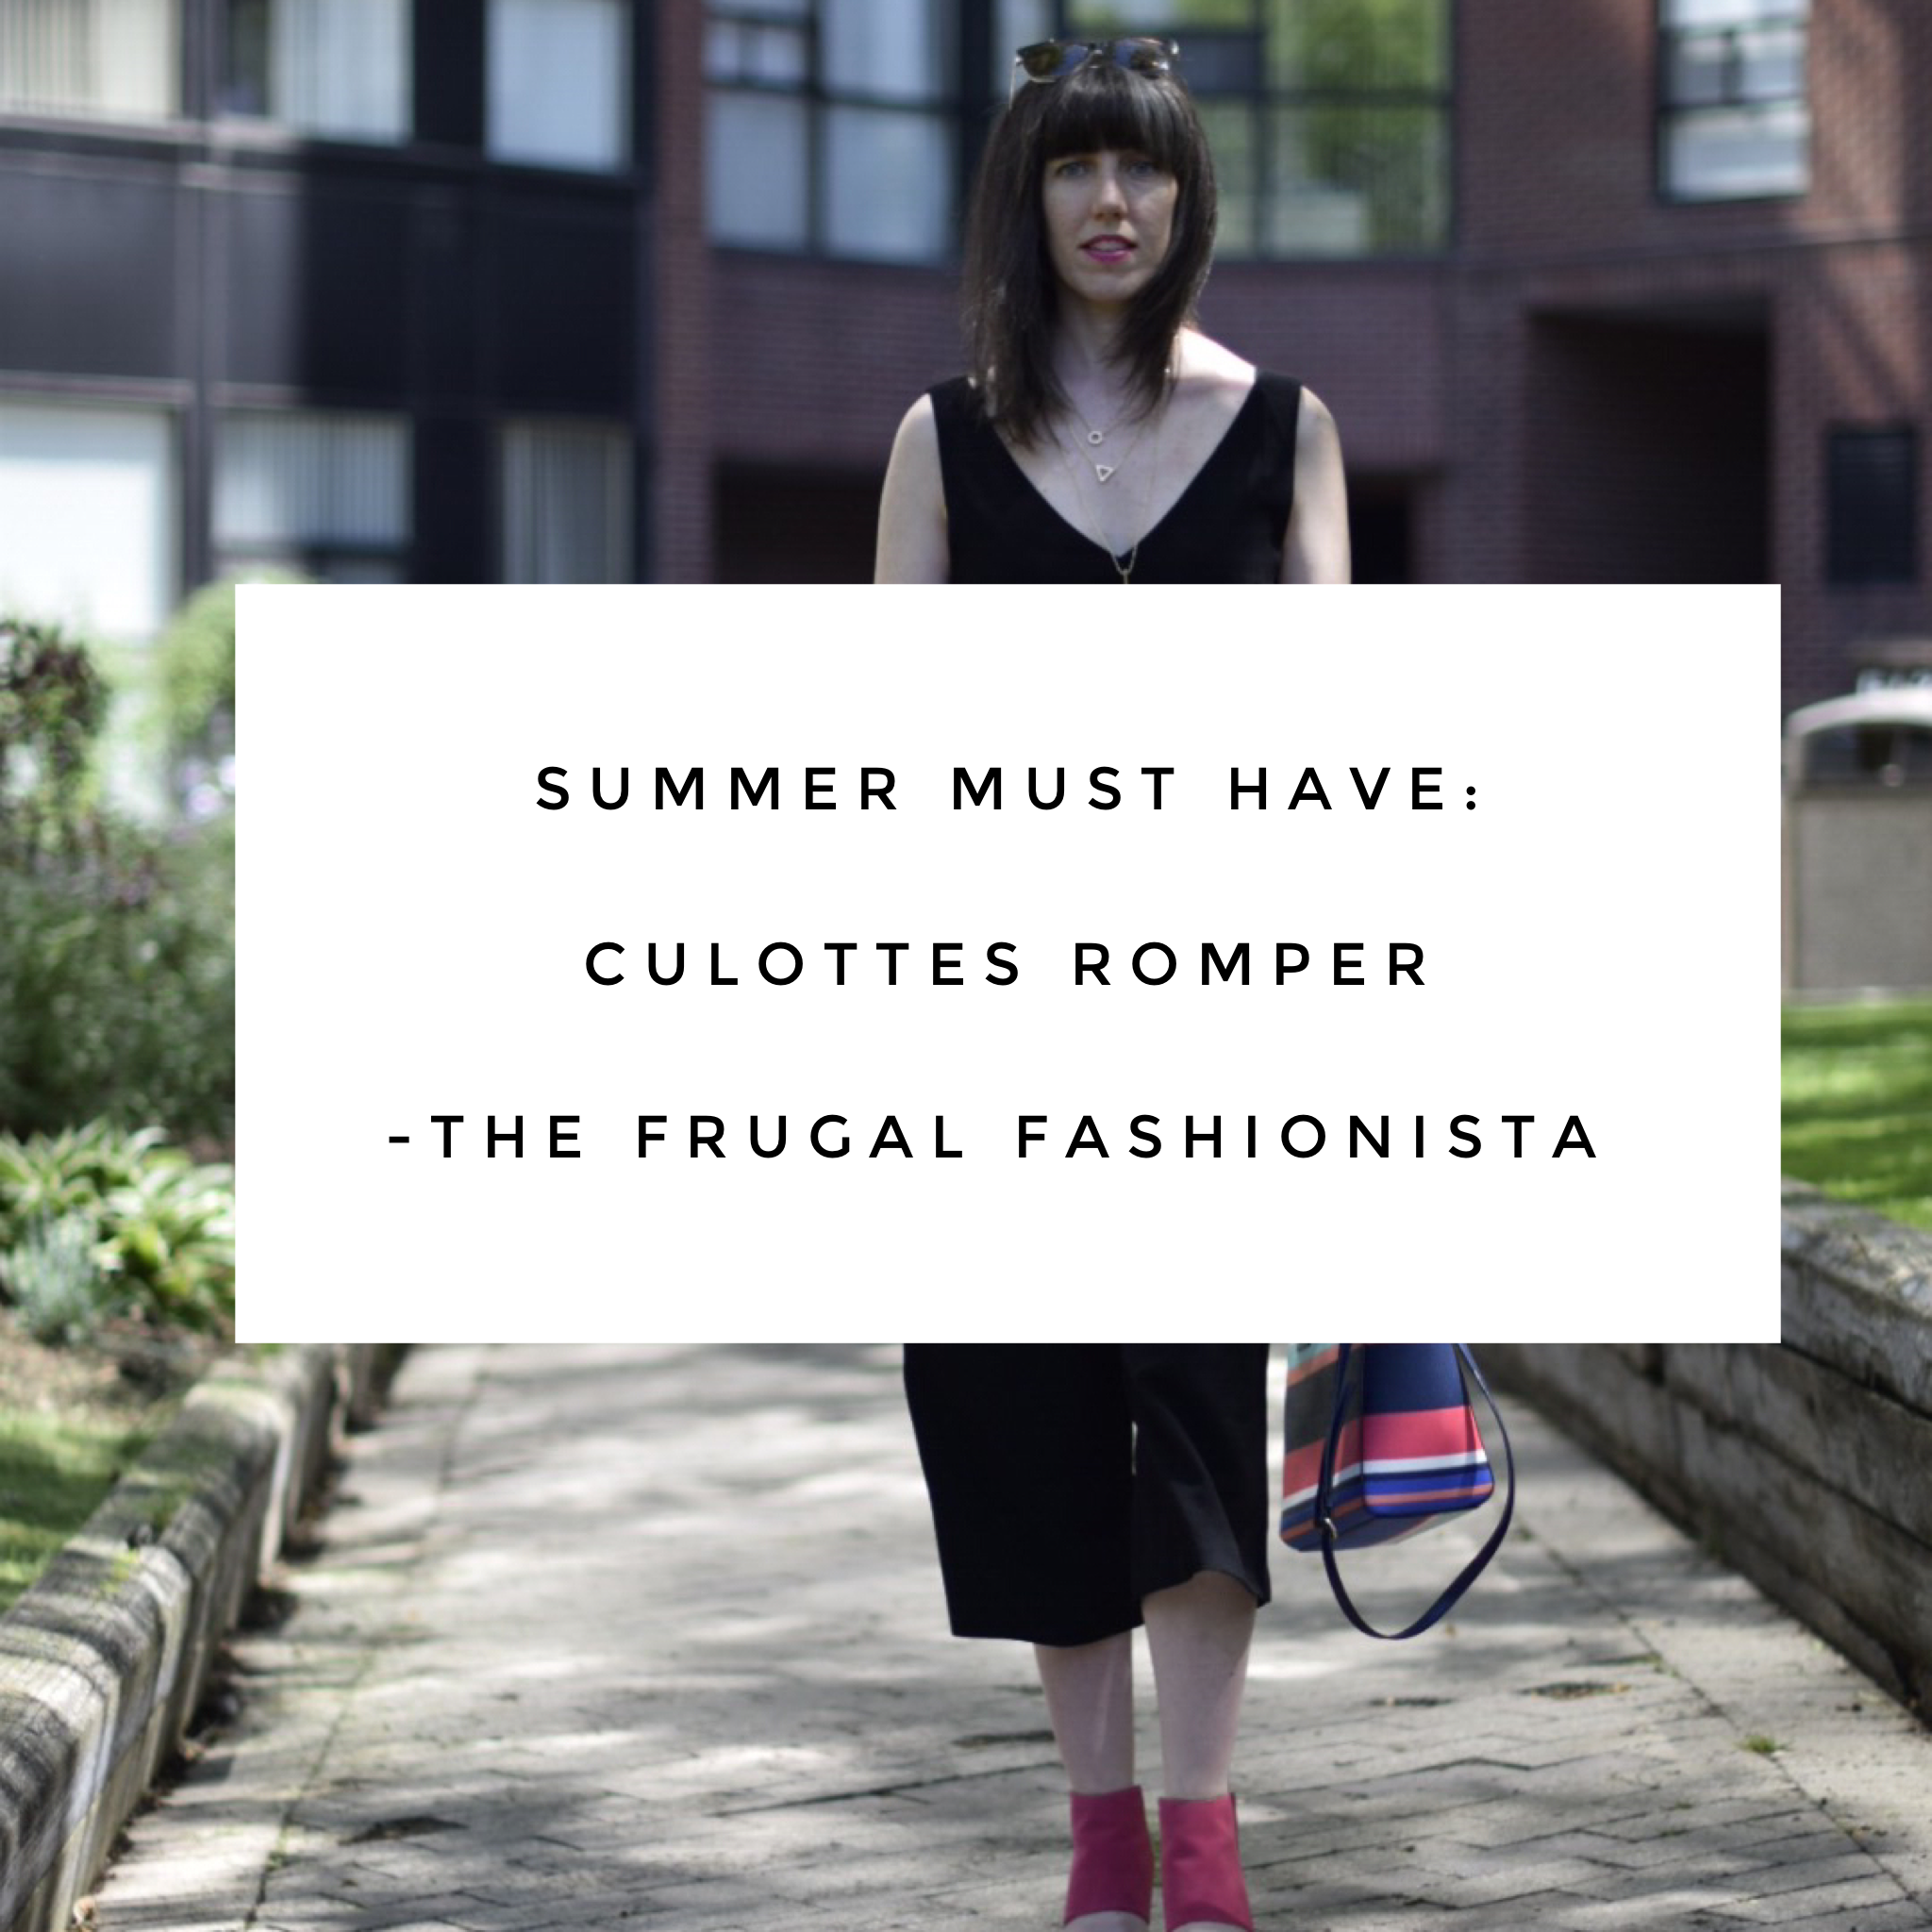 The Frugal Fashionista: Summer Must Have: Culottes Romper